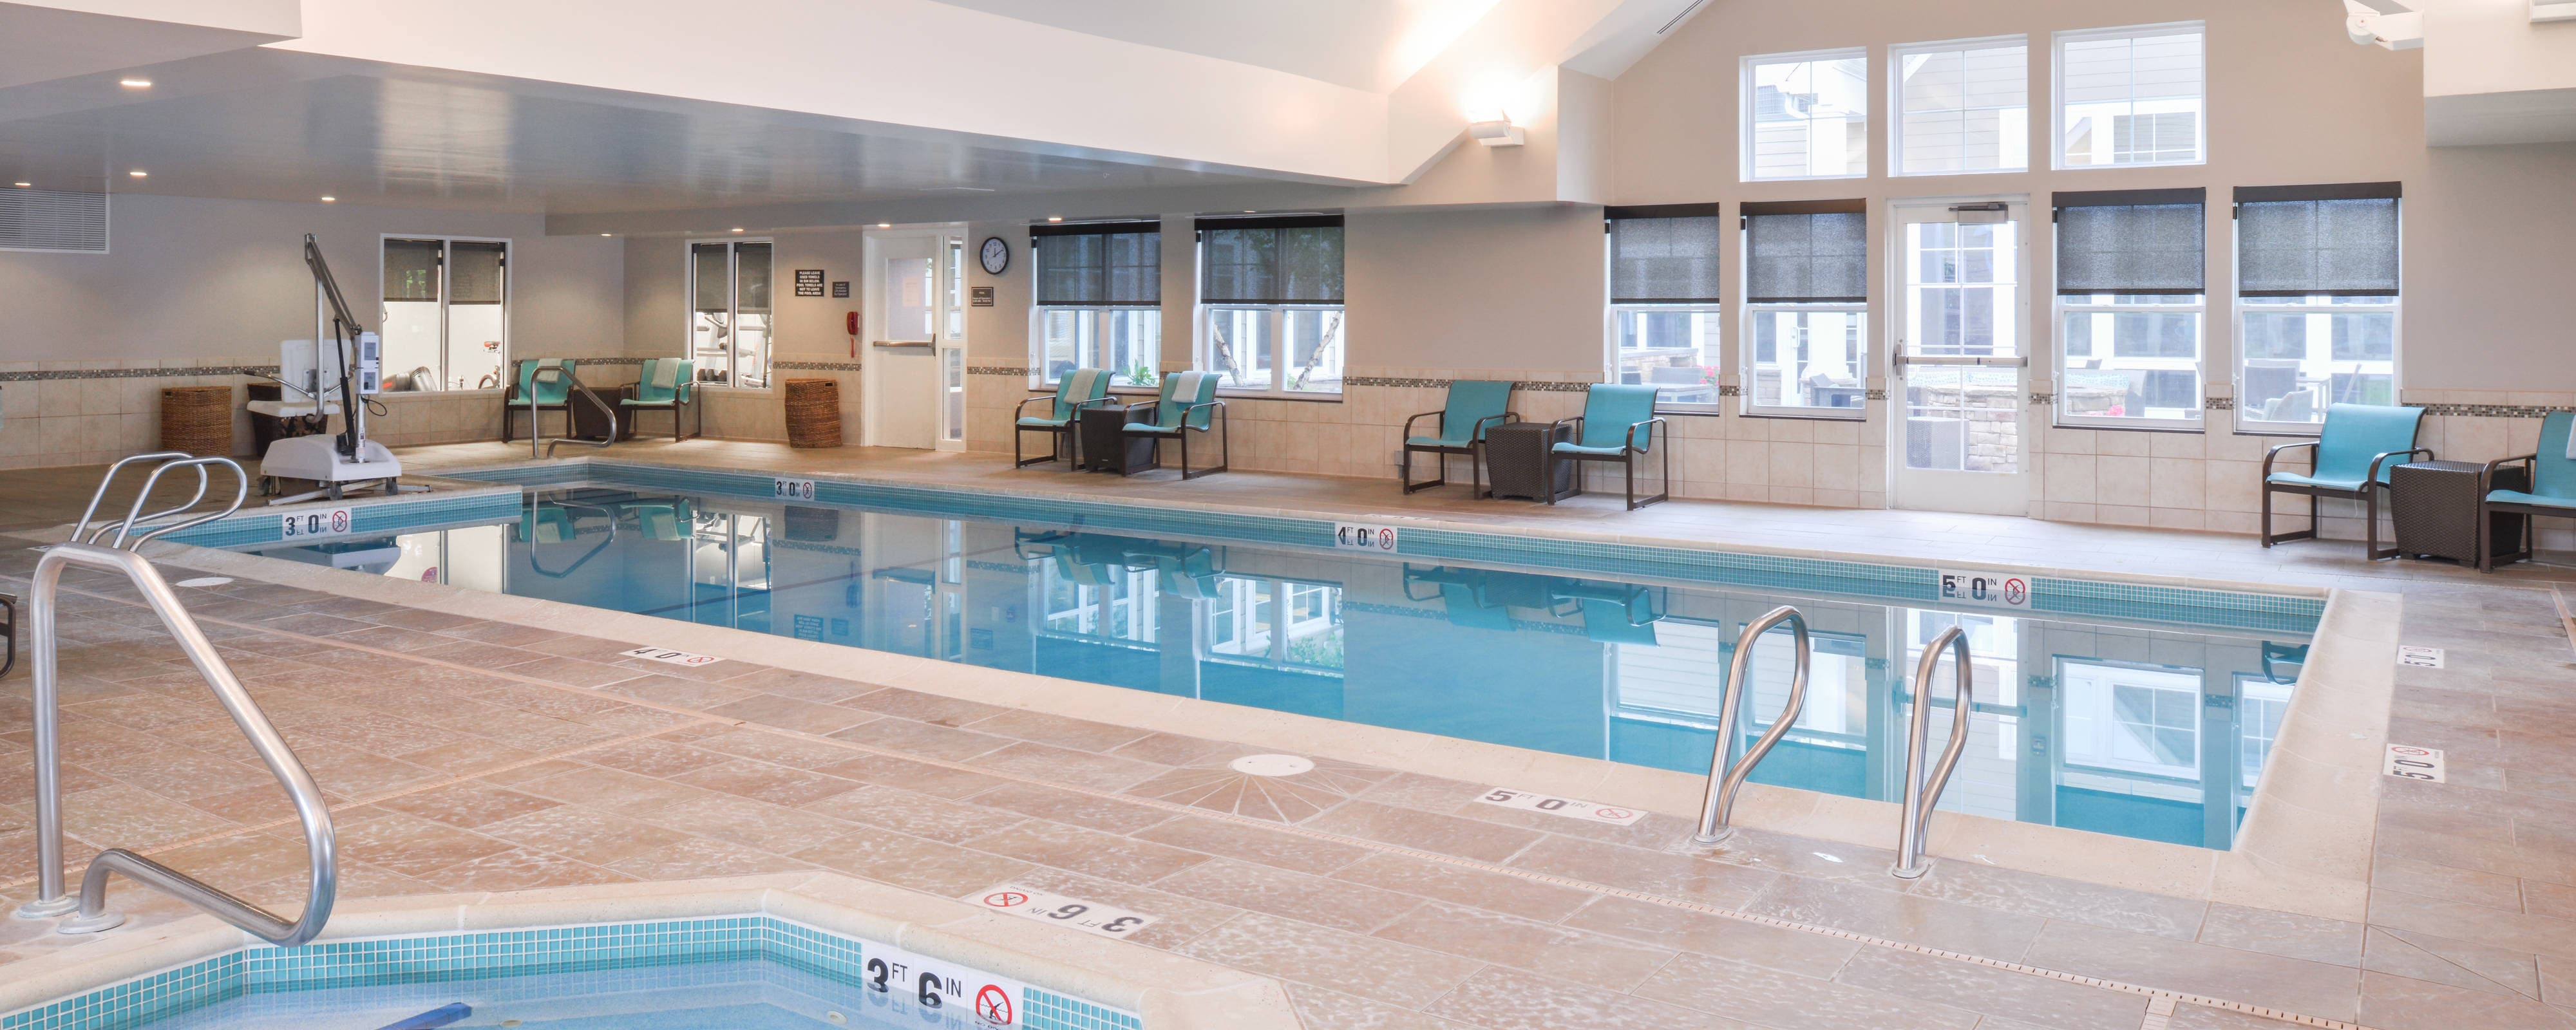 Executive Inn & Suites - A top-rated Oakland Hotel, offering spacious rooms, free shuttle service, breakfast, event space & much more.